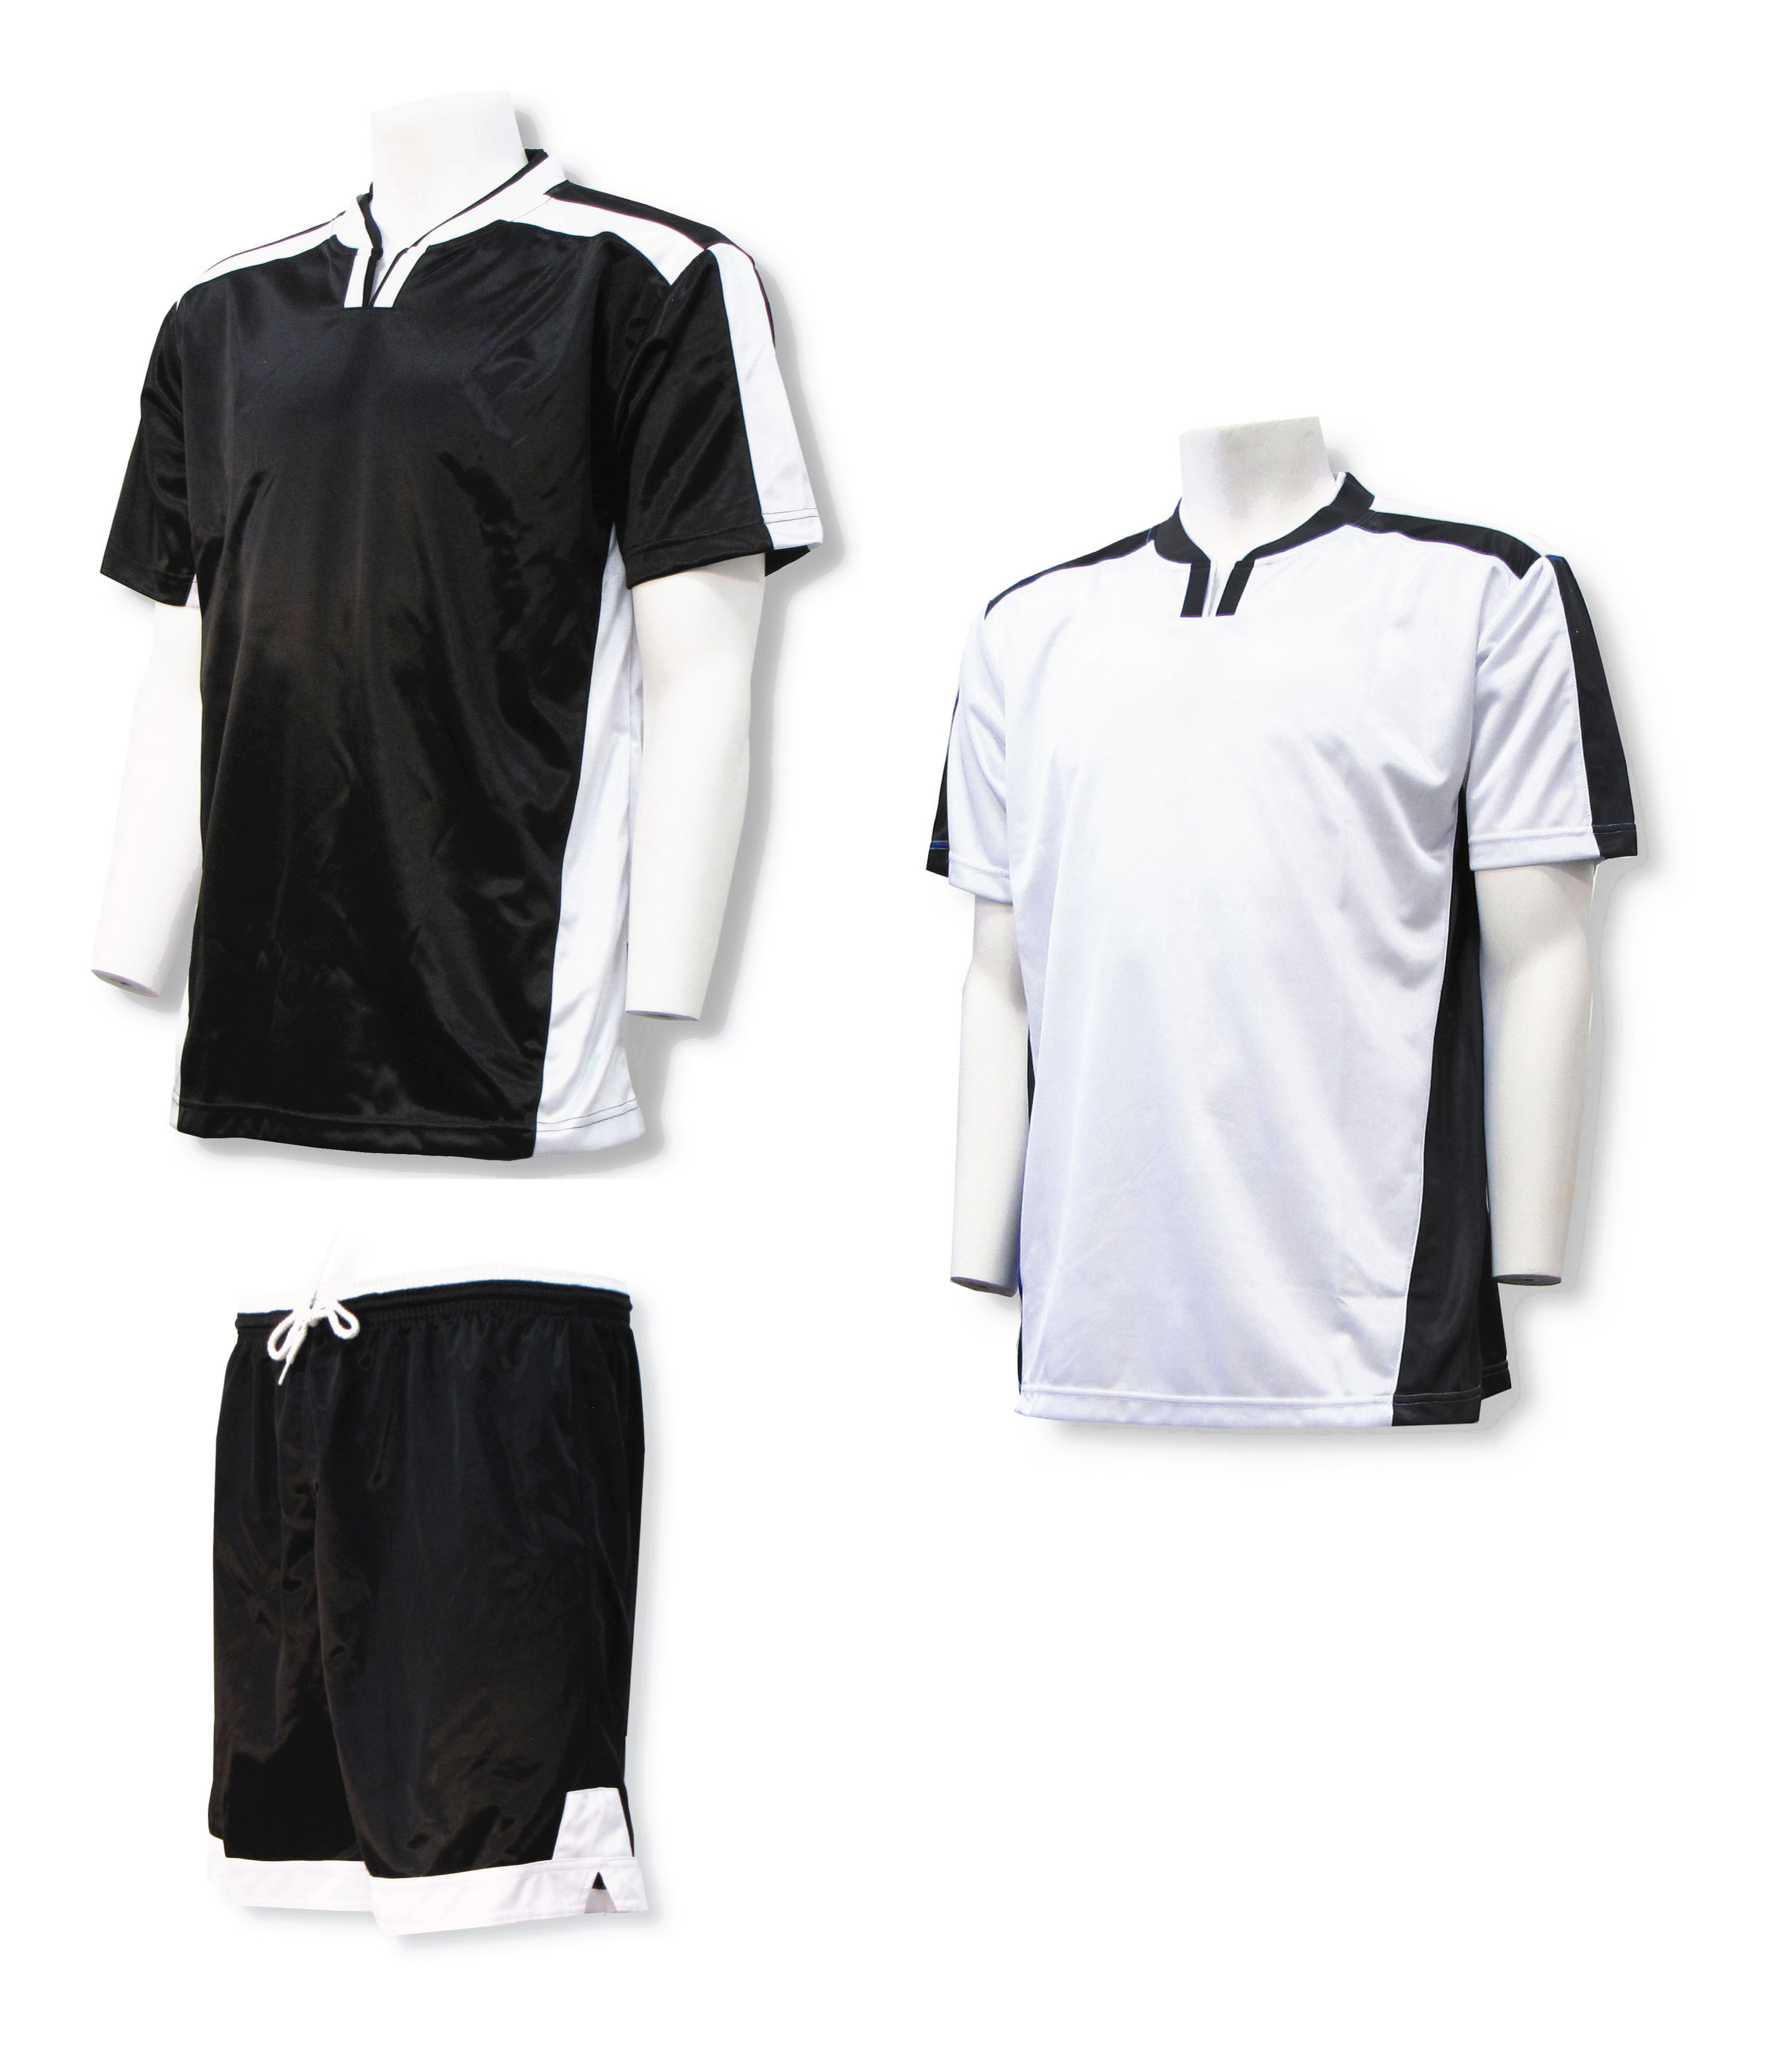 Winchester soccer uniform kit with 2 jerseys, 1 pr shorts in black/white by Code Four Athletics